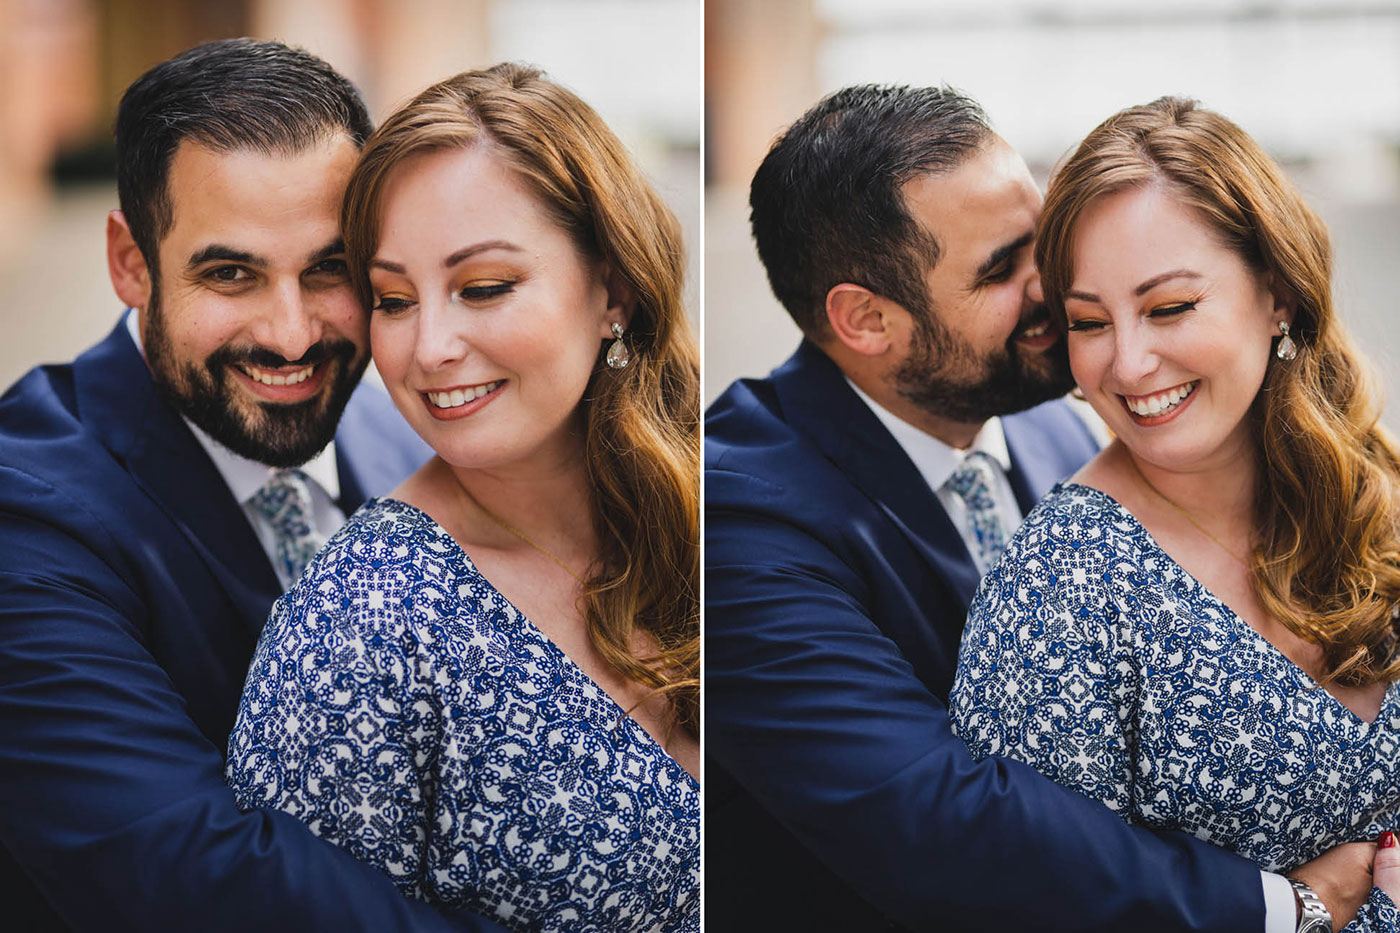 E-Session photos at the Liberty State Park in Jersey City by Weddings by Hanel